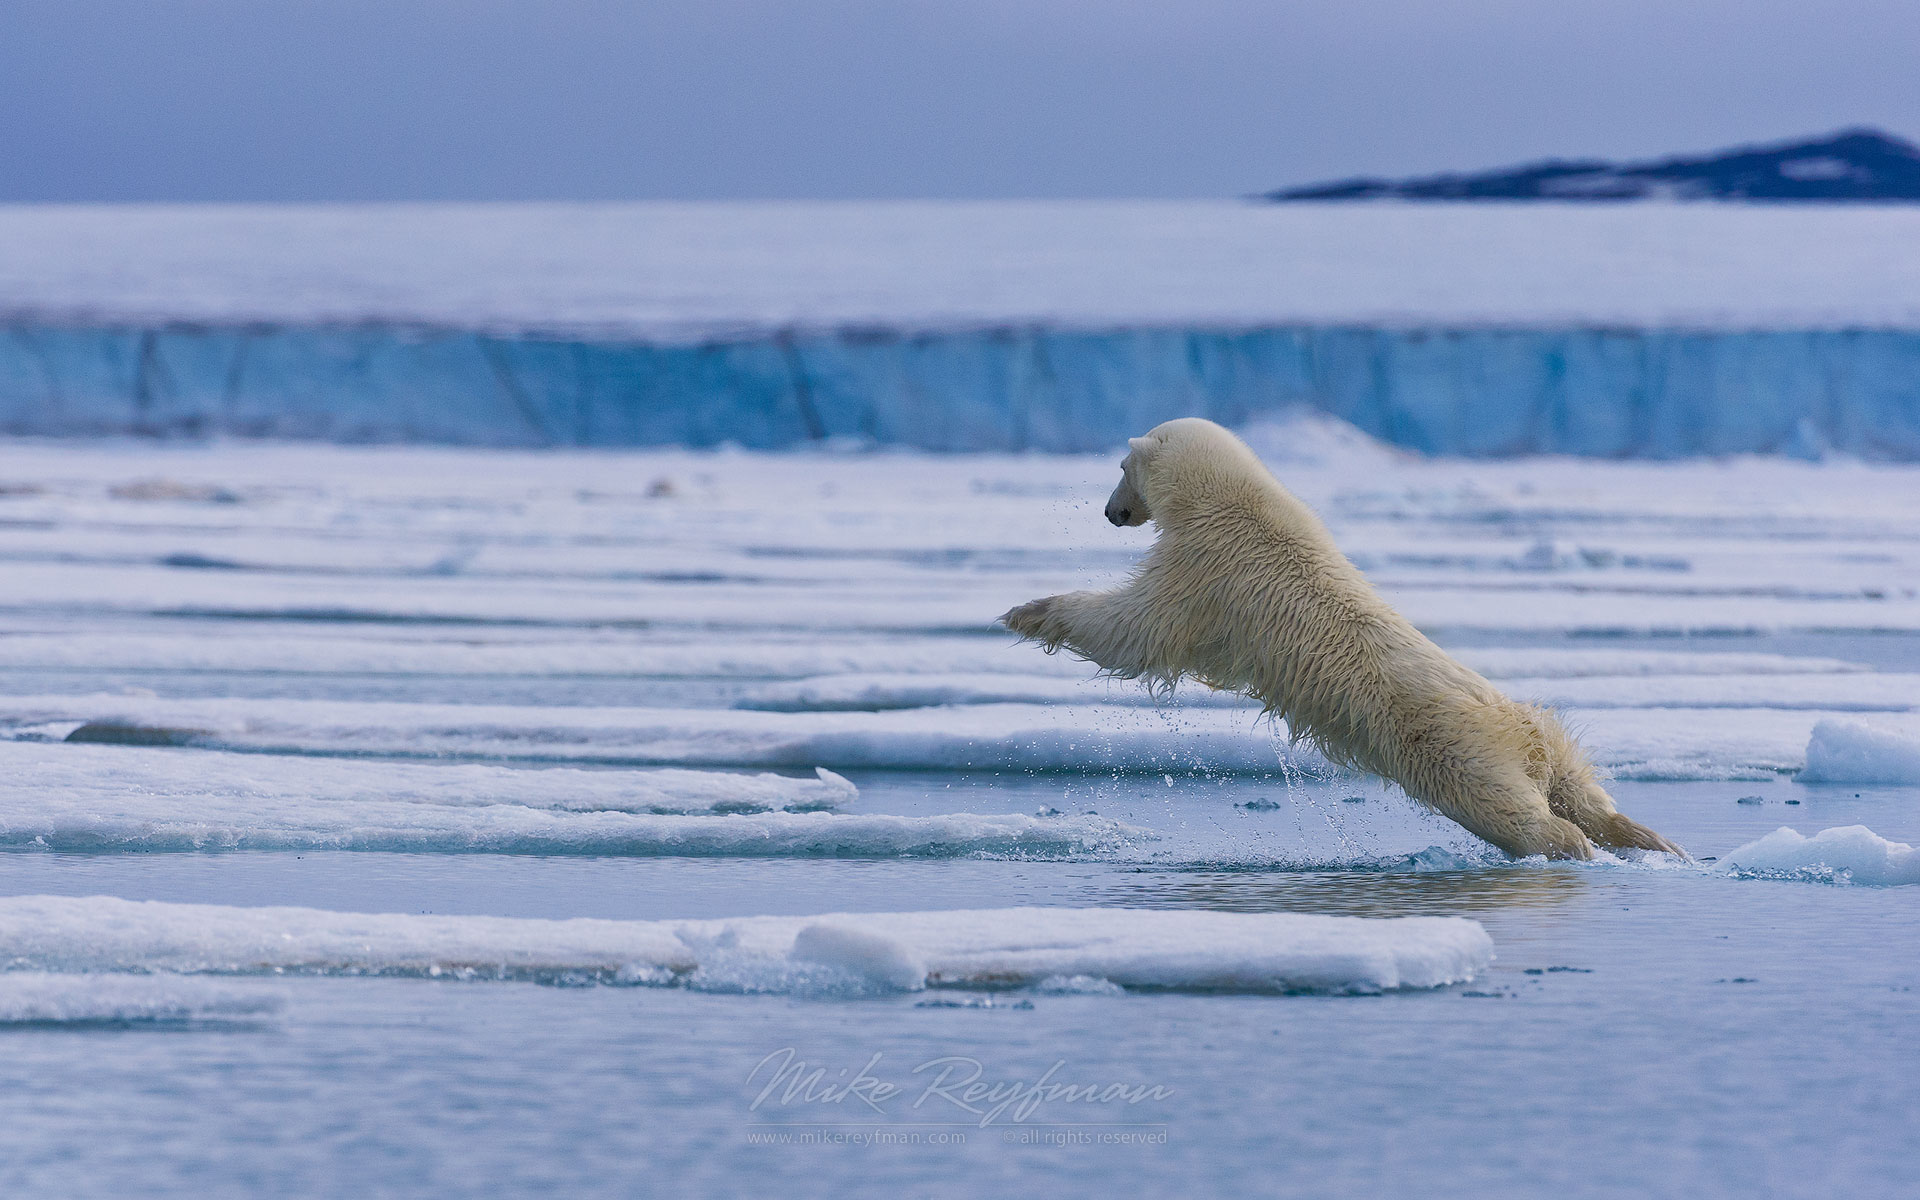 Polar bear leaps across the ice floe. Spitsbergen, Svalbard, Norway. - Polar-Bears-Svalbard-Spitsbergen-Norway - Mike Reyfman Photography